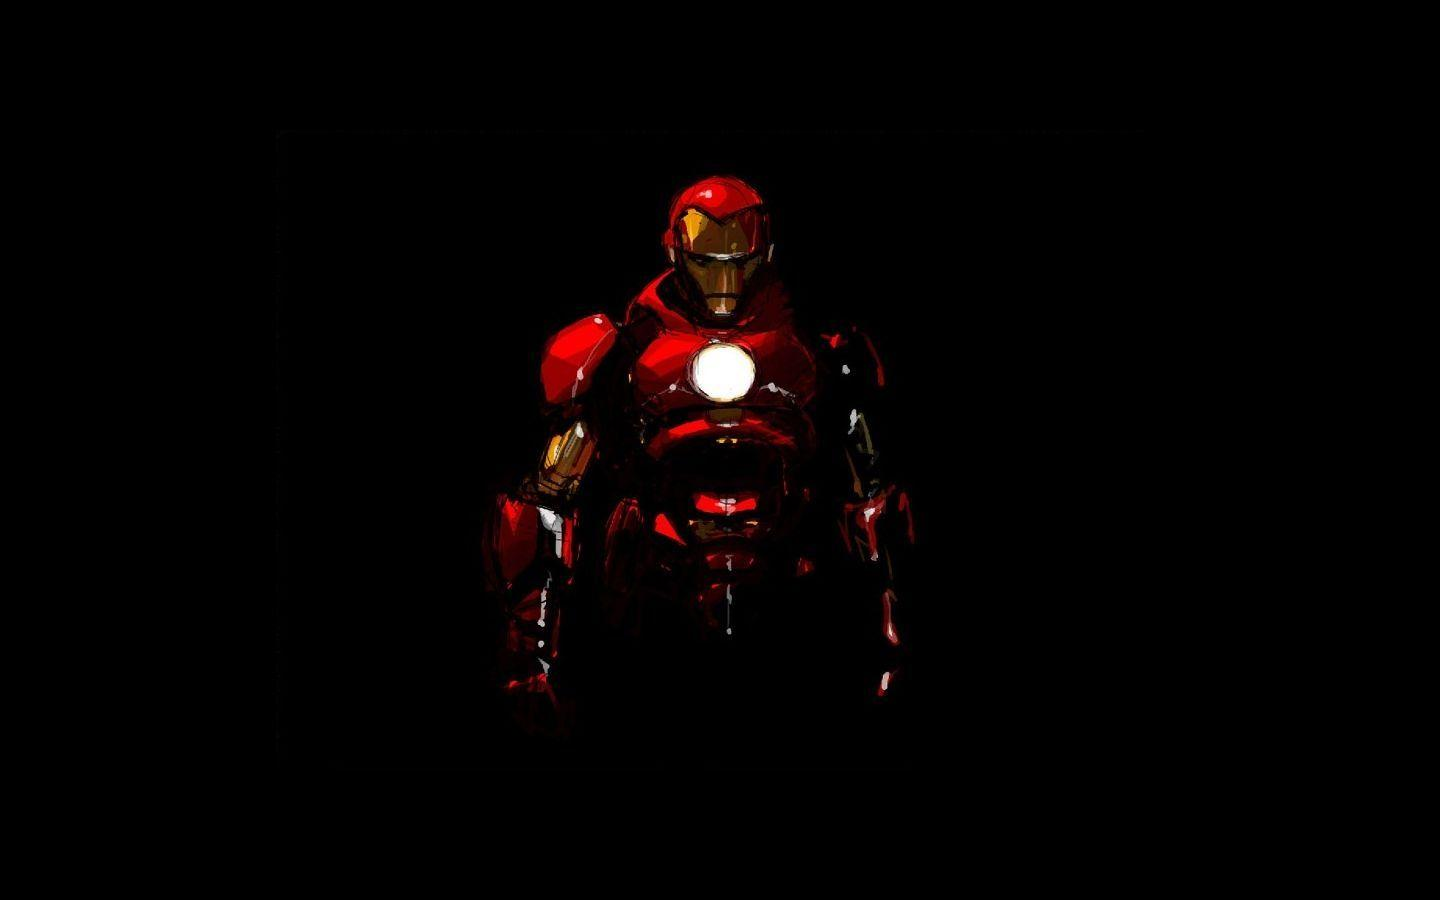 Iron Man Hd Wallpapers 1080p For Pc Wallpaper Cave